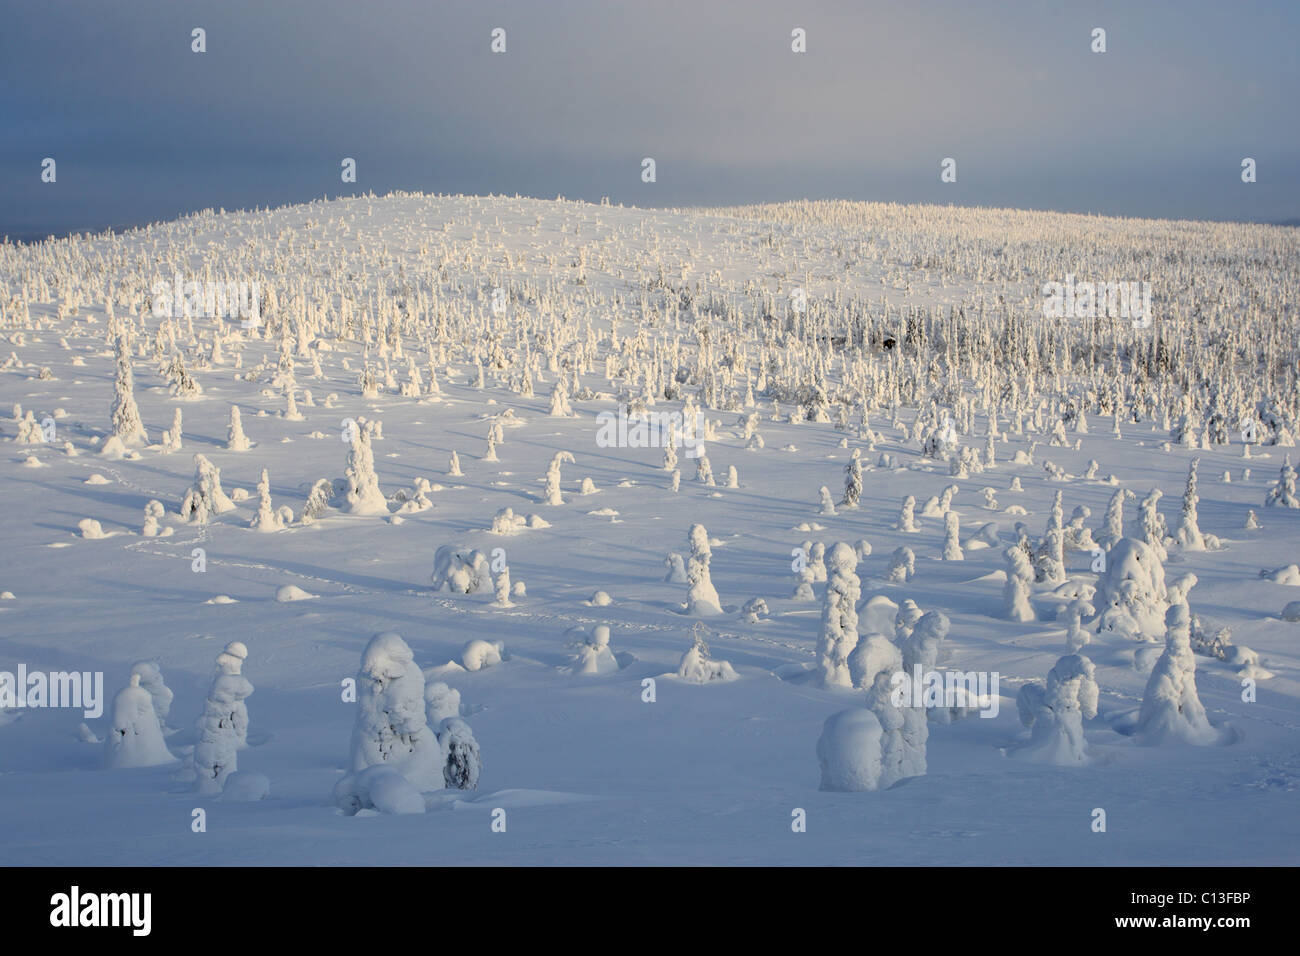 Snow covered trees at Riisitunturi National Park, Lapland, Finland - Stock Image